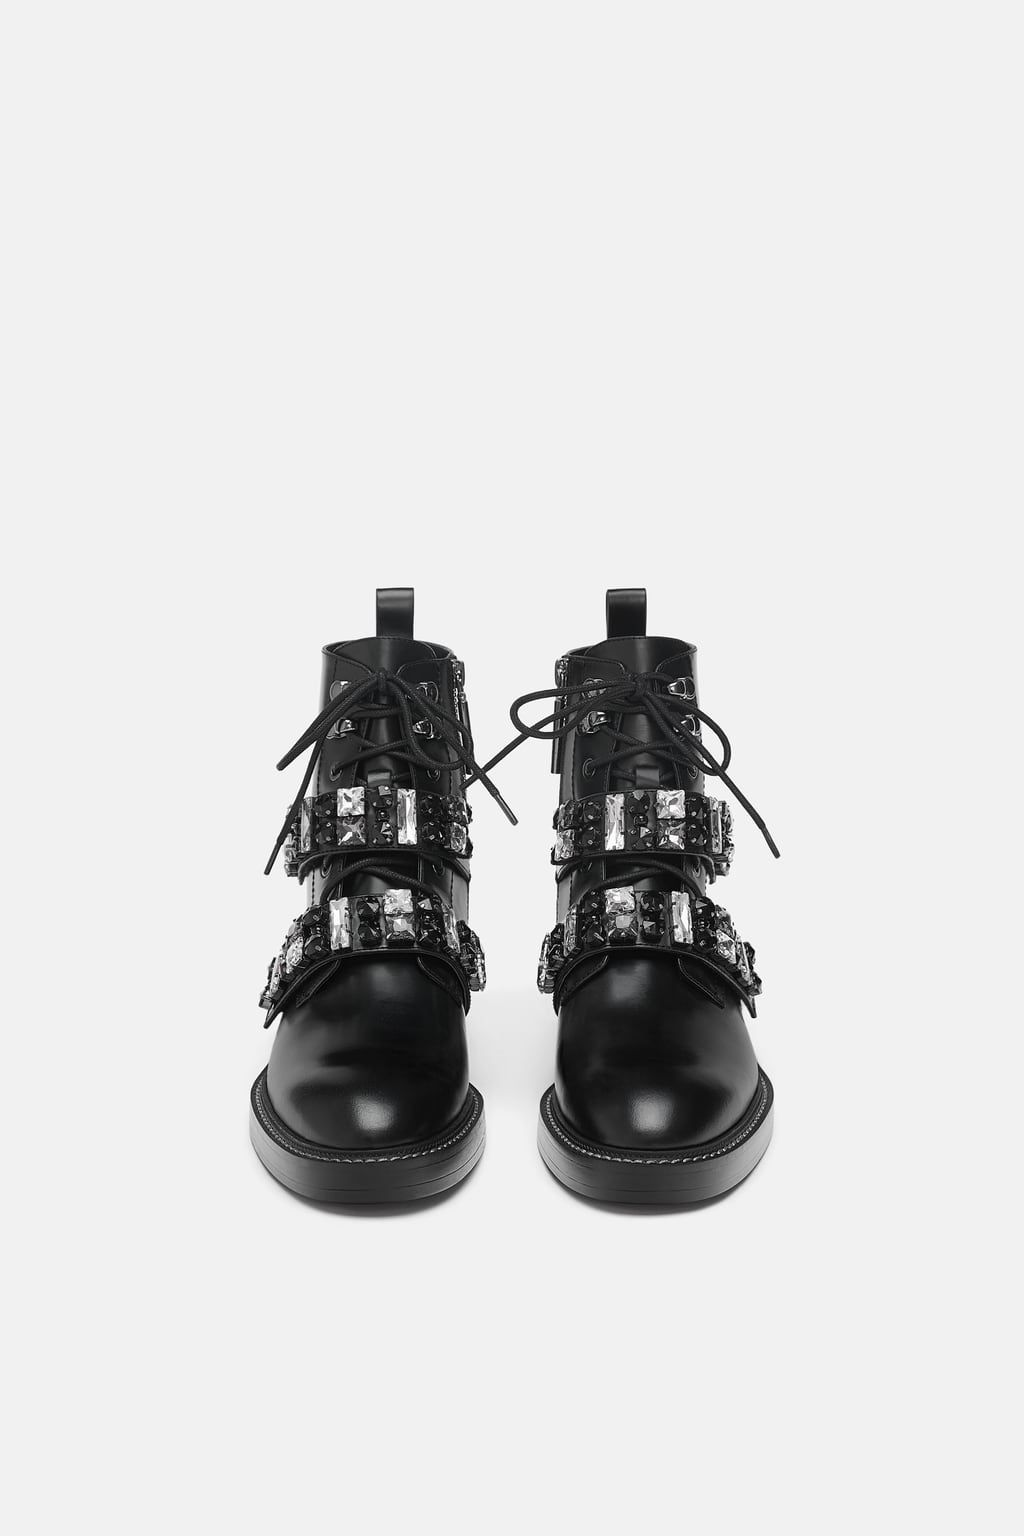 963b6b778e3 Image 3 of LEATHER BIKER ANKLE BOOTS WITH BEJEWELLED STRAPS from Zara